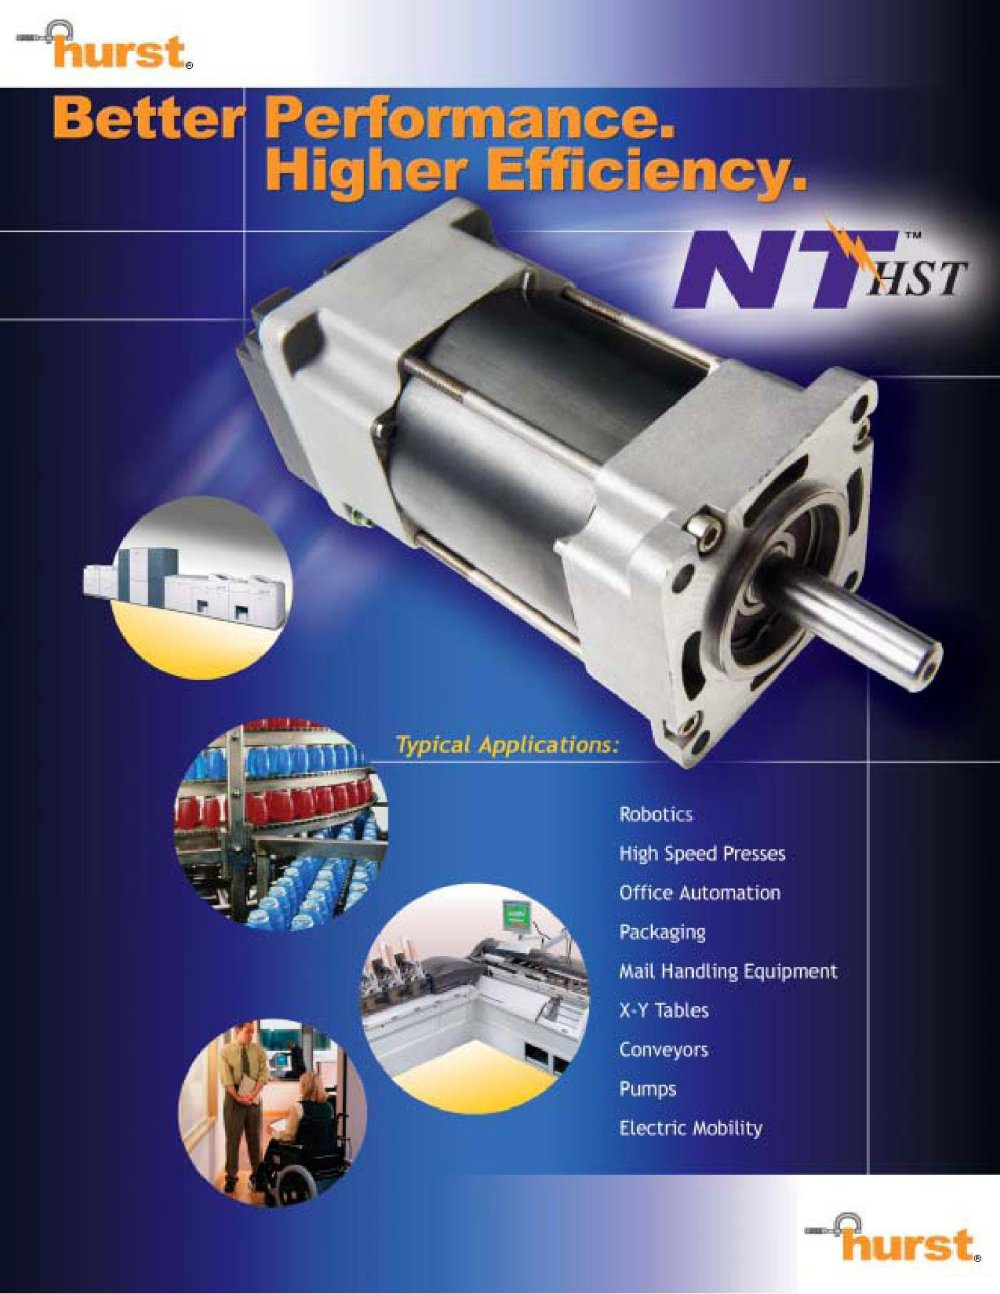 Hst23 12 48 Vdc Brushless Dc Motor Catalog Hurst Pdf Catalogue Pole Winding Diagram Wiring 1 6 Pages